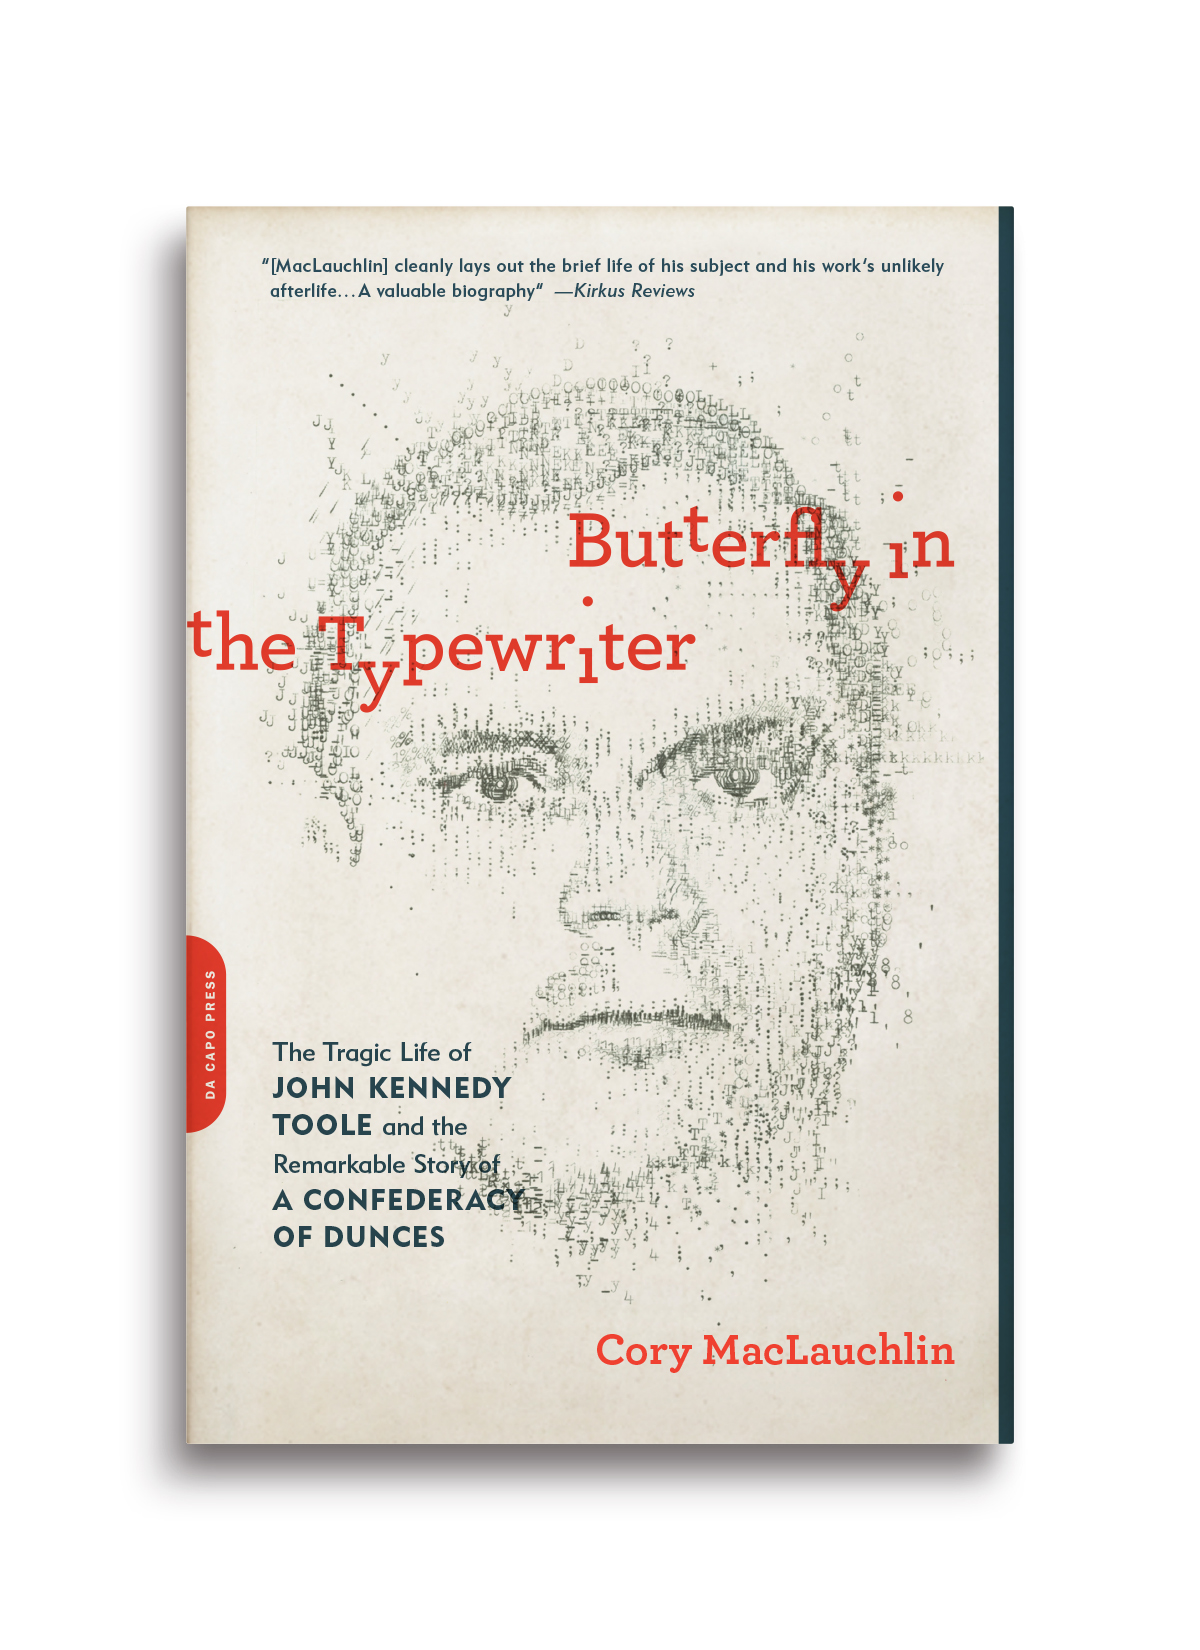 ButterflyintheTypewriter_PB_cover.jpg